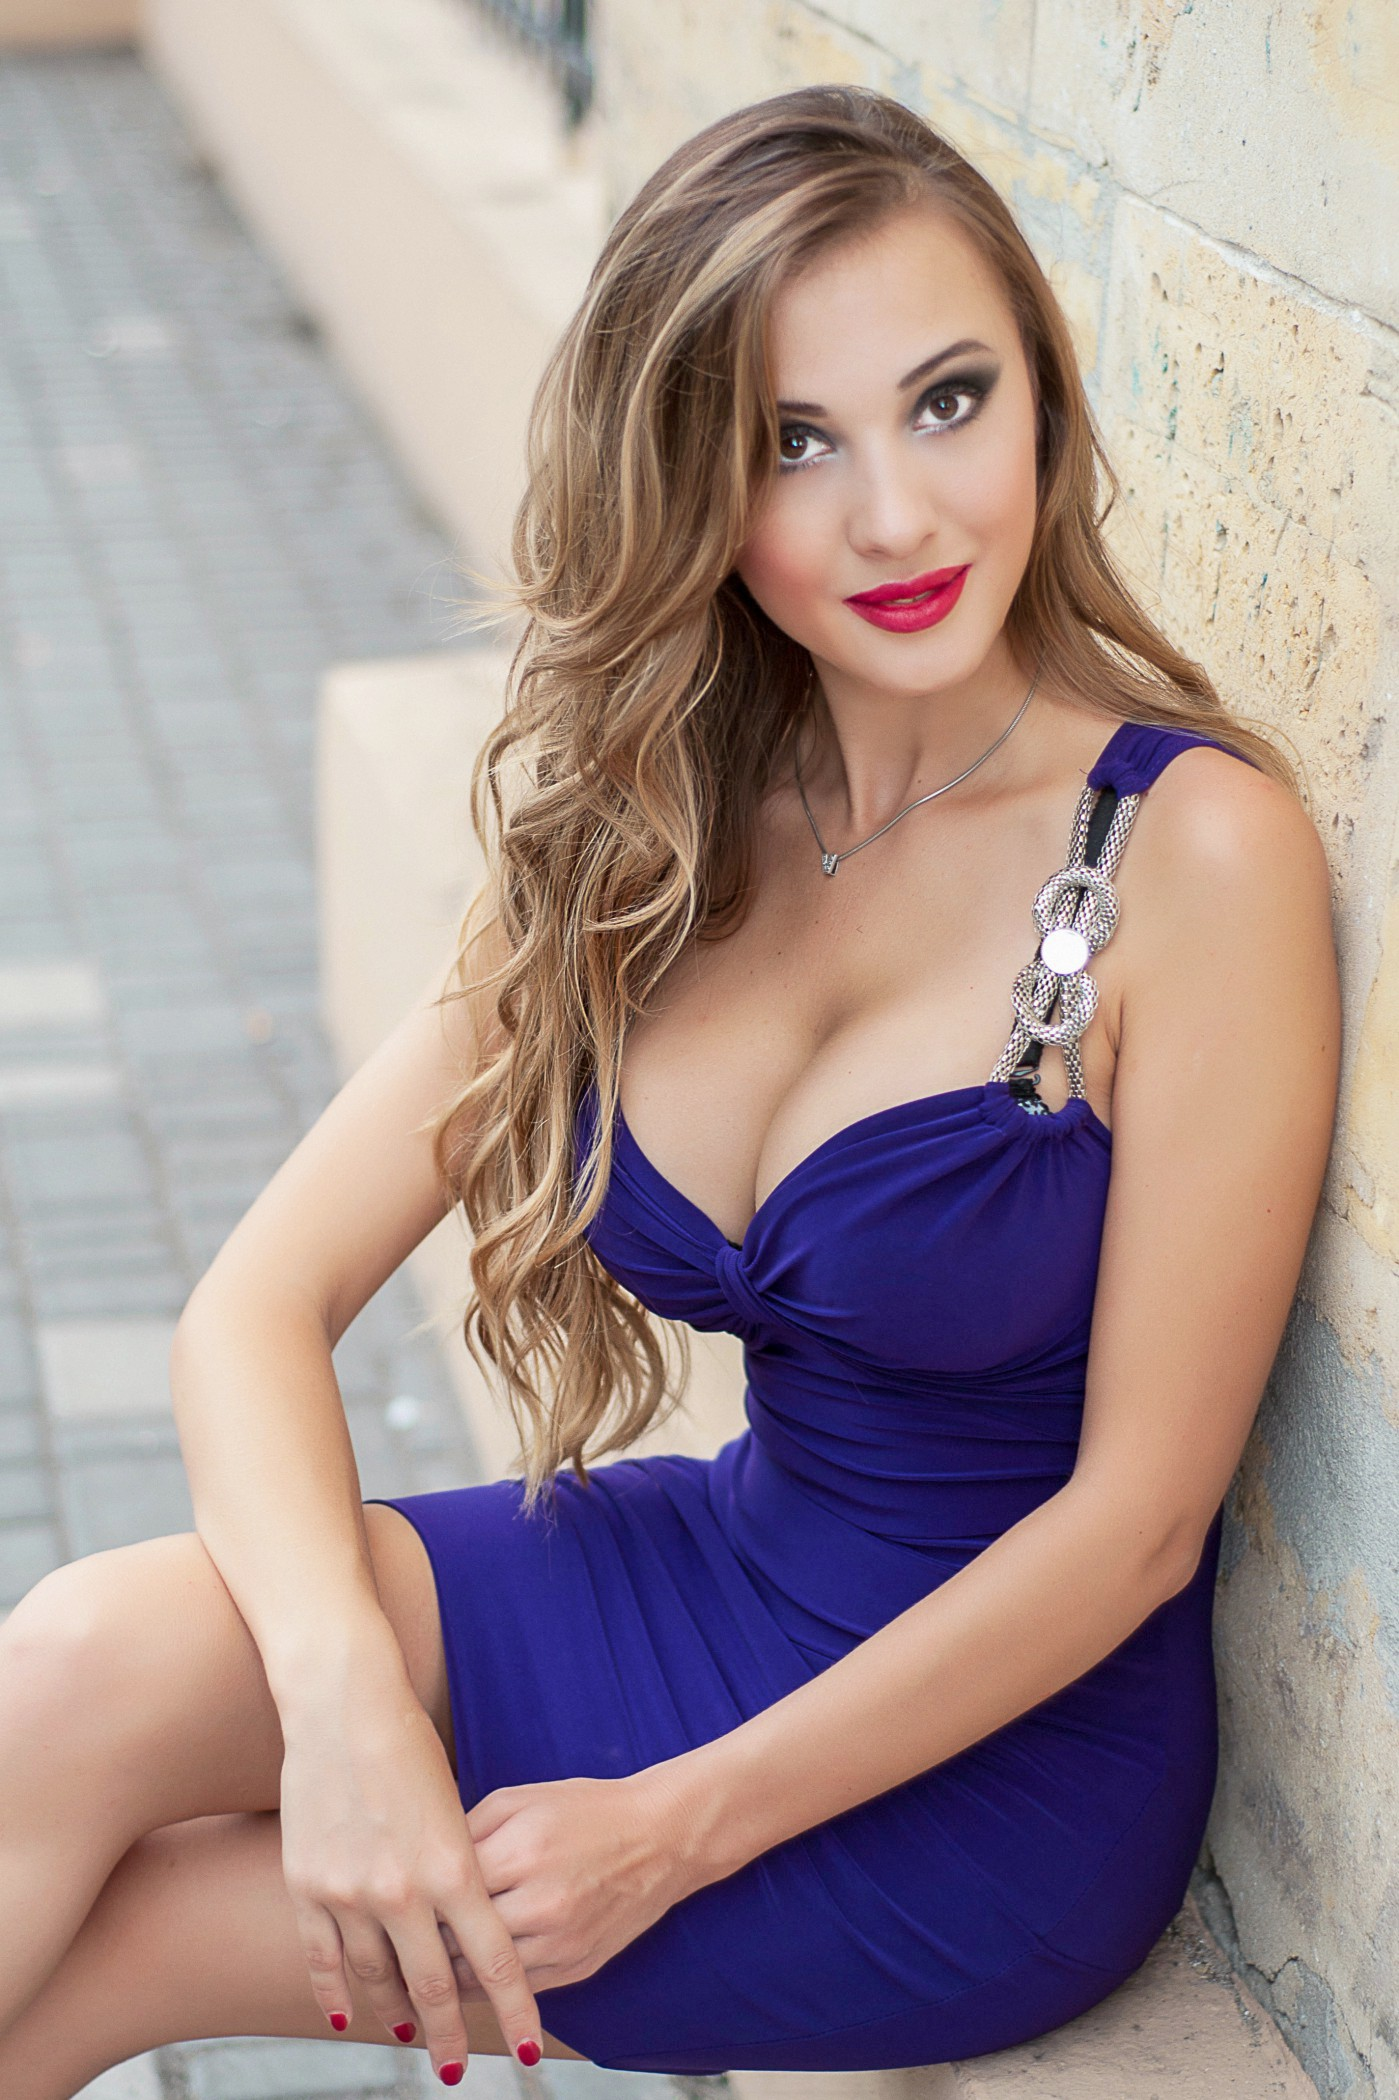 Anna Ninna Ukrainian Single Girl (bride): Victoria Eyes, 29 Years Old